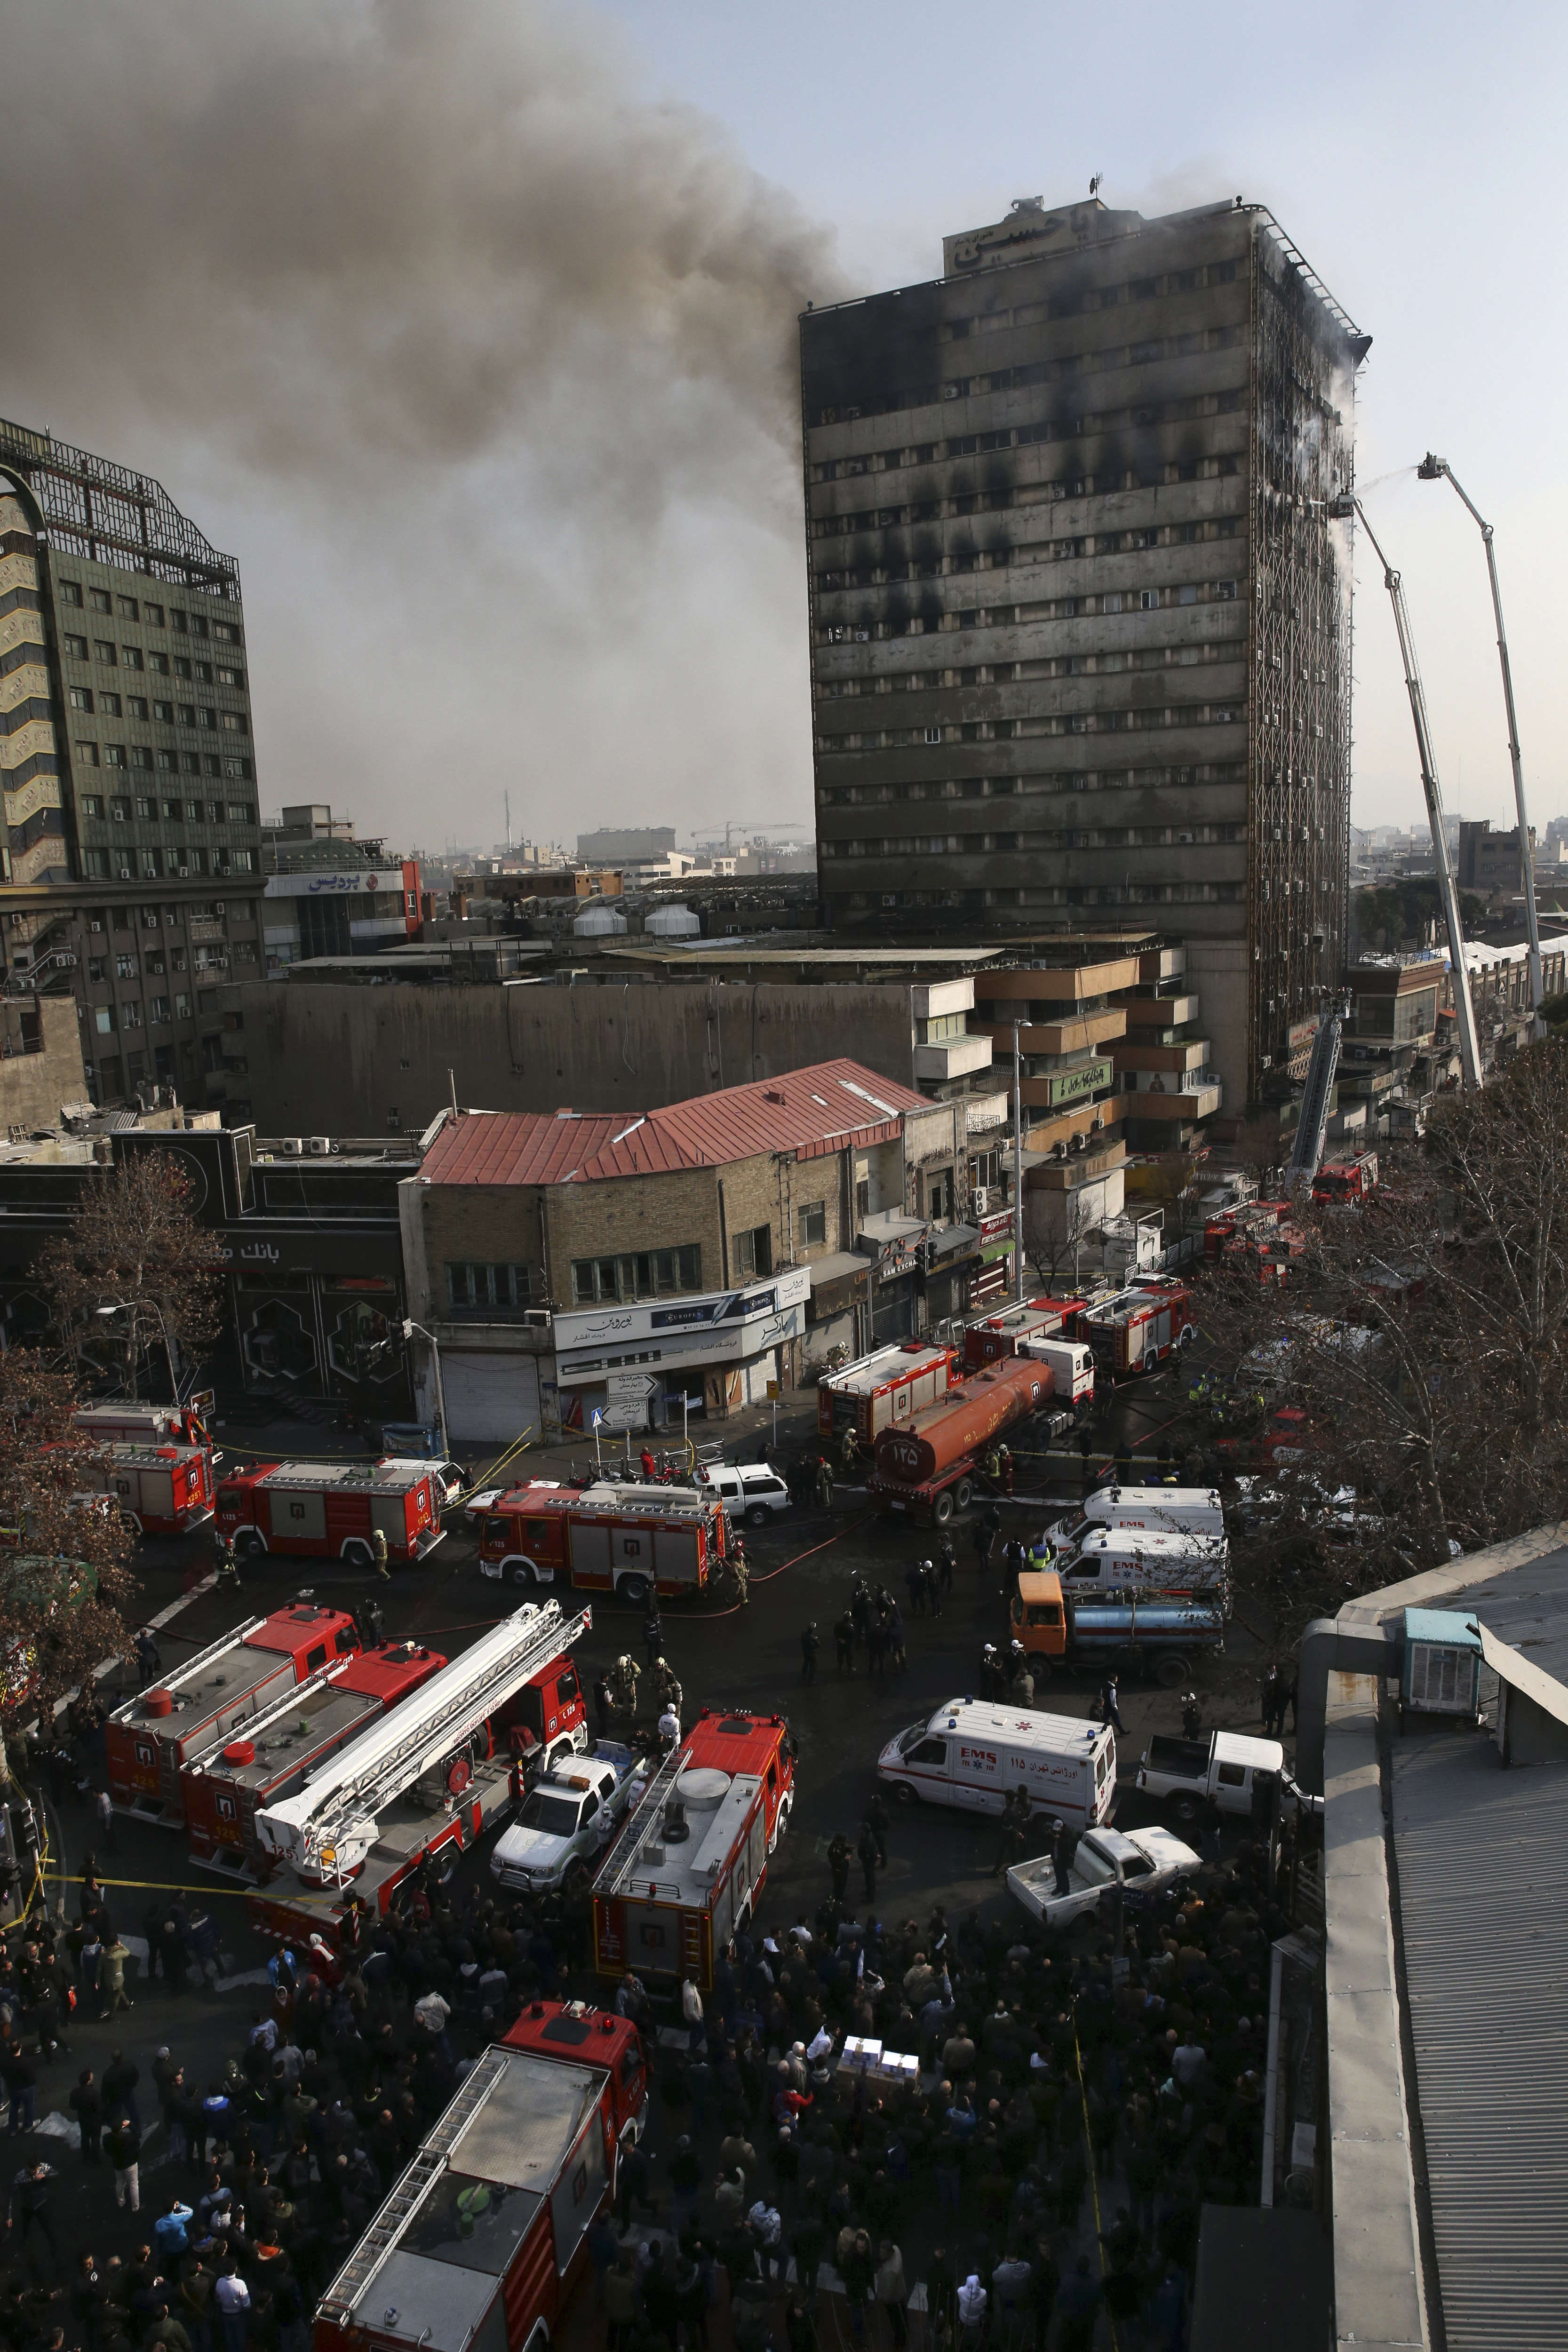 Smoke rises up from the Plasco building where firefighters work to extinguish fire in central Tehran, Iran on Jan. 19, 2017. (AP Photo/Vahid Salemi)